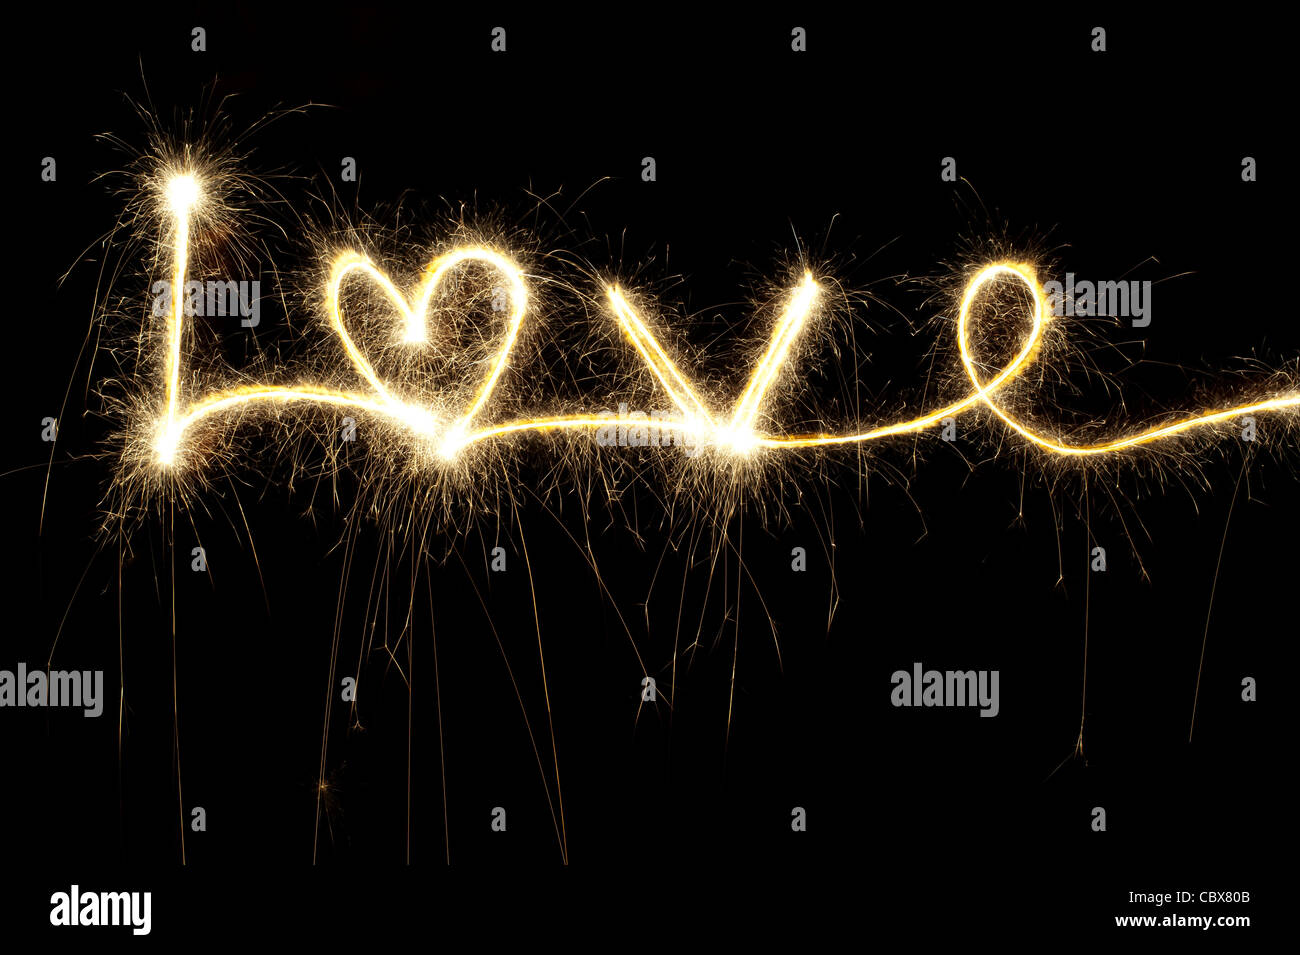 LOVE written with a sparkler at night including a heart shape Stock Photo